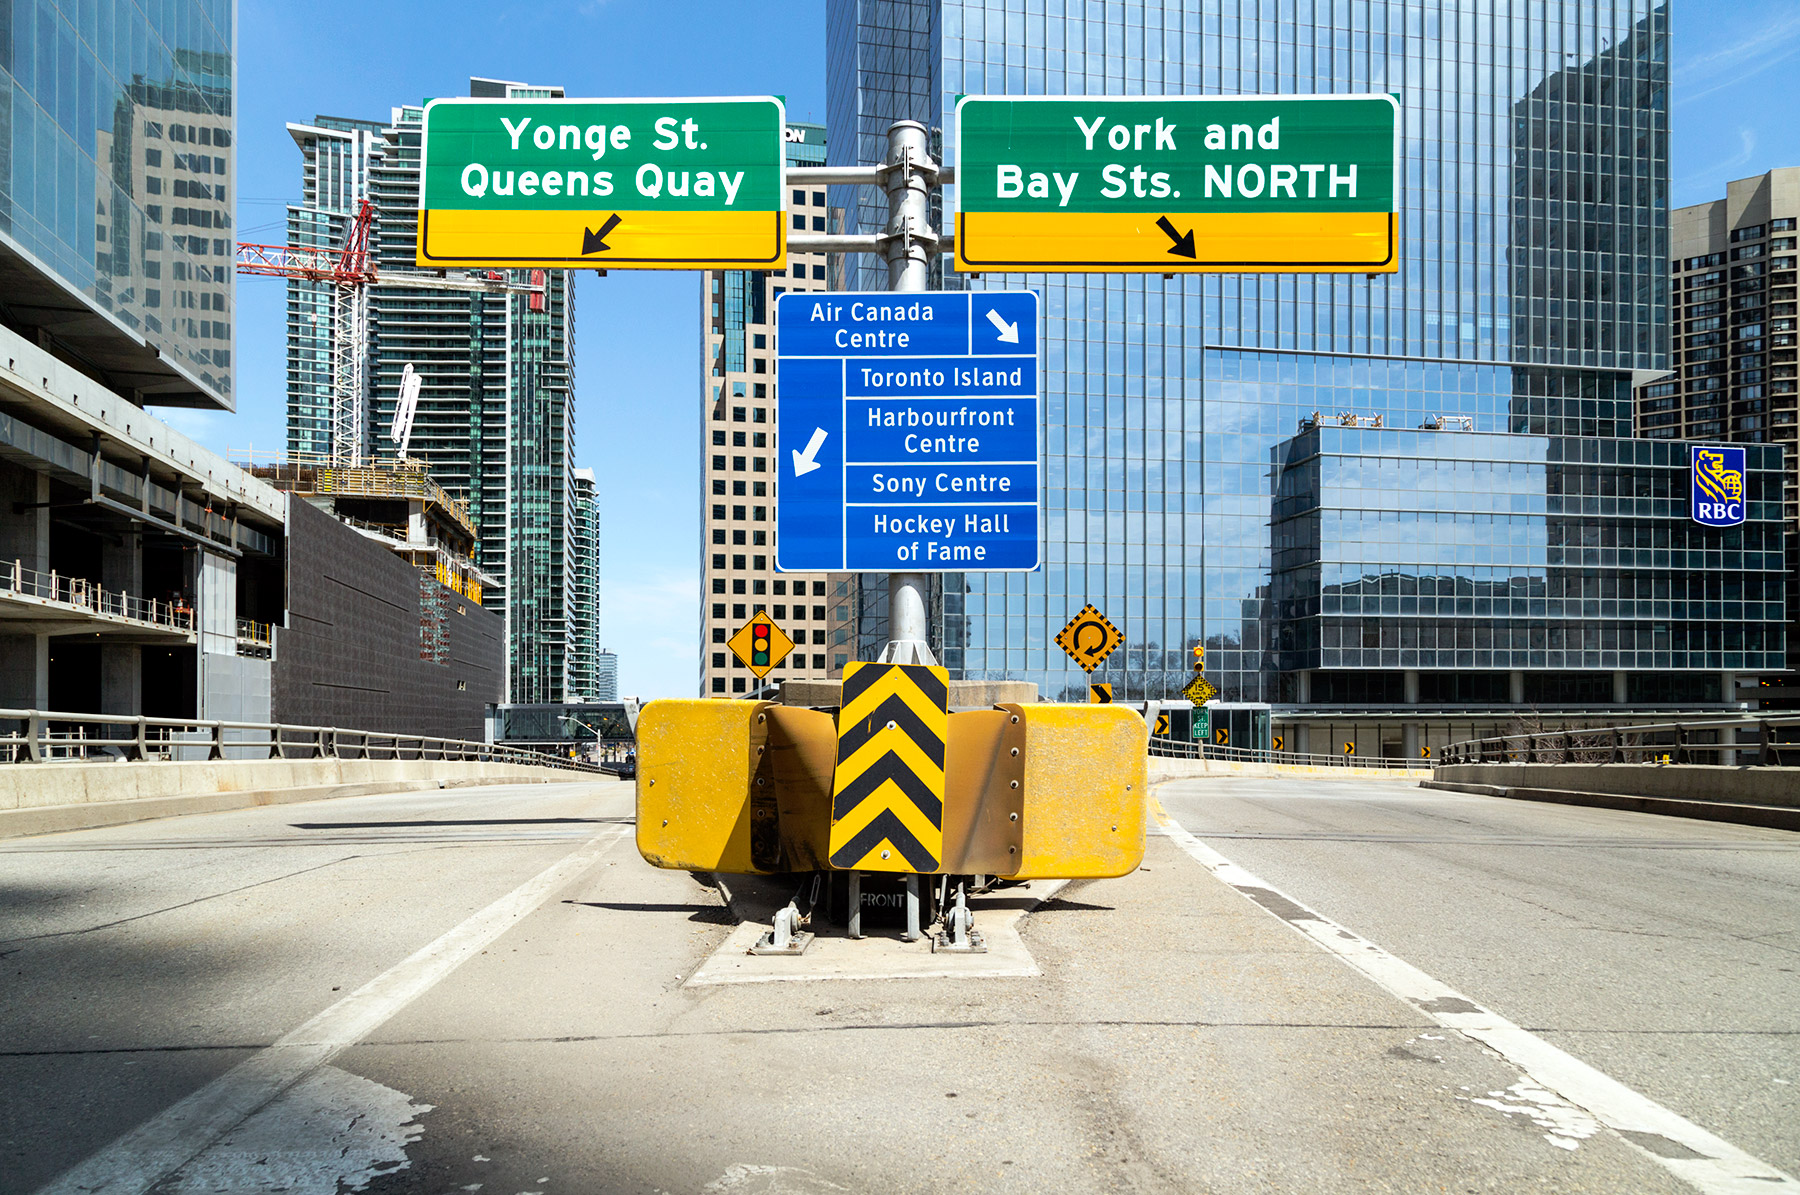 20150502. When on foot which Gardiner Expressway exit do you tak